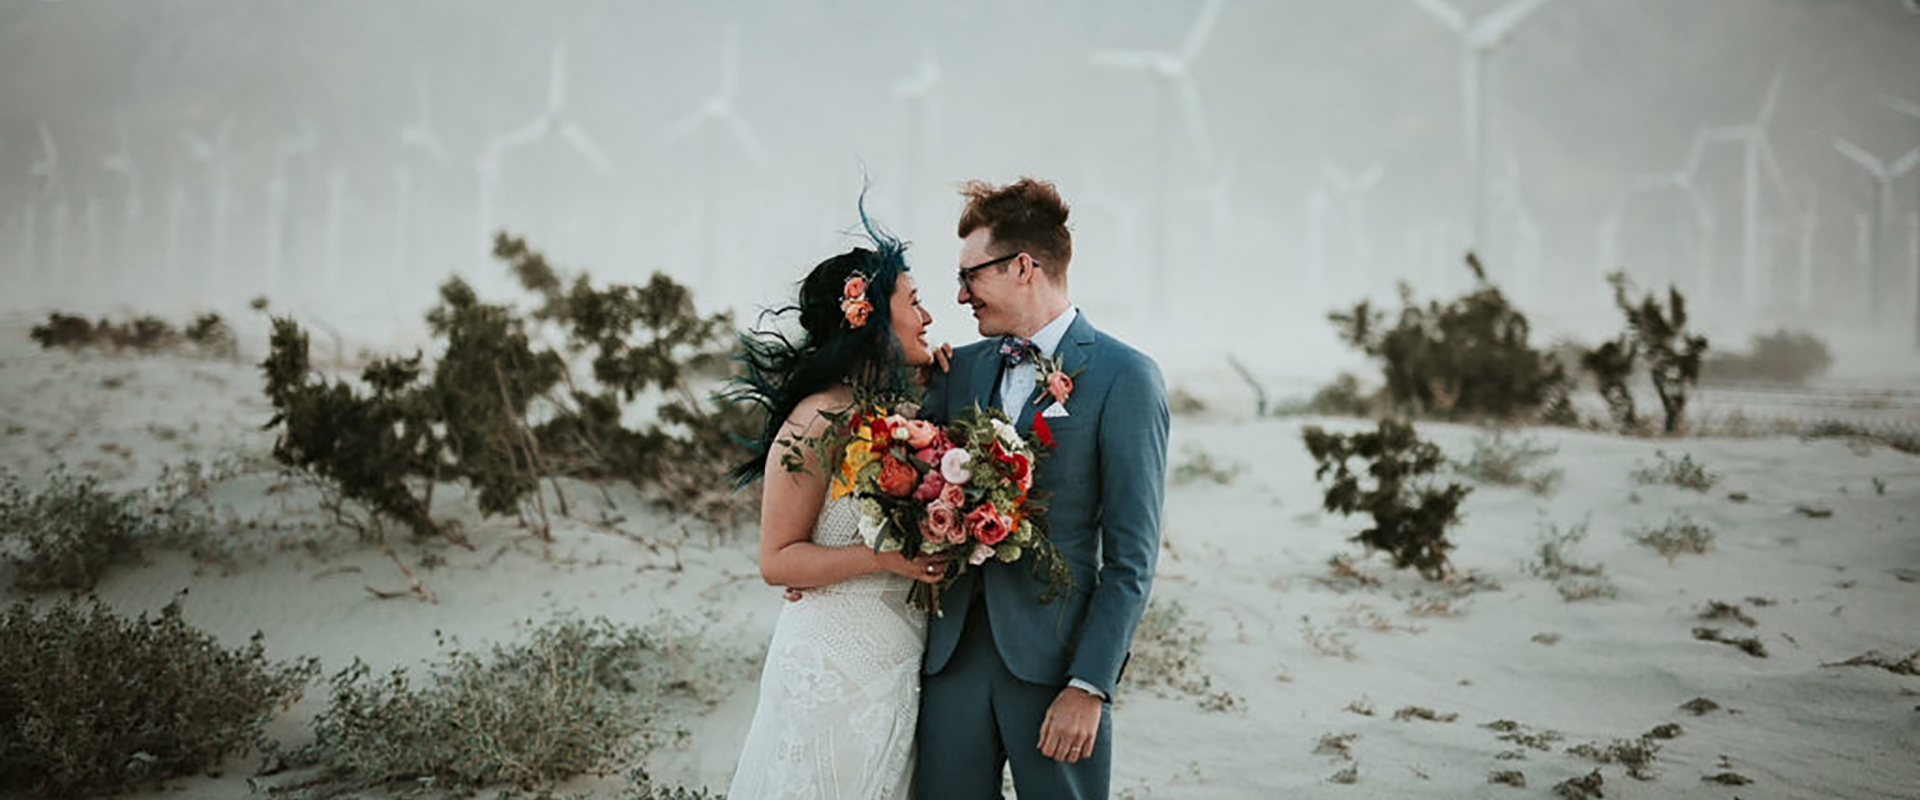 Ash + Lee | Palm Springs, California | The Ace Hotel & Swim Club